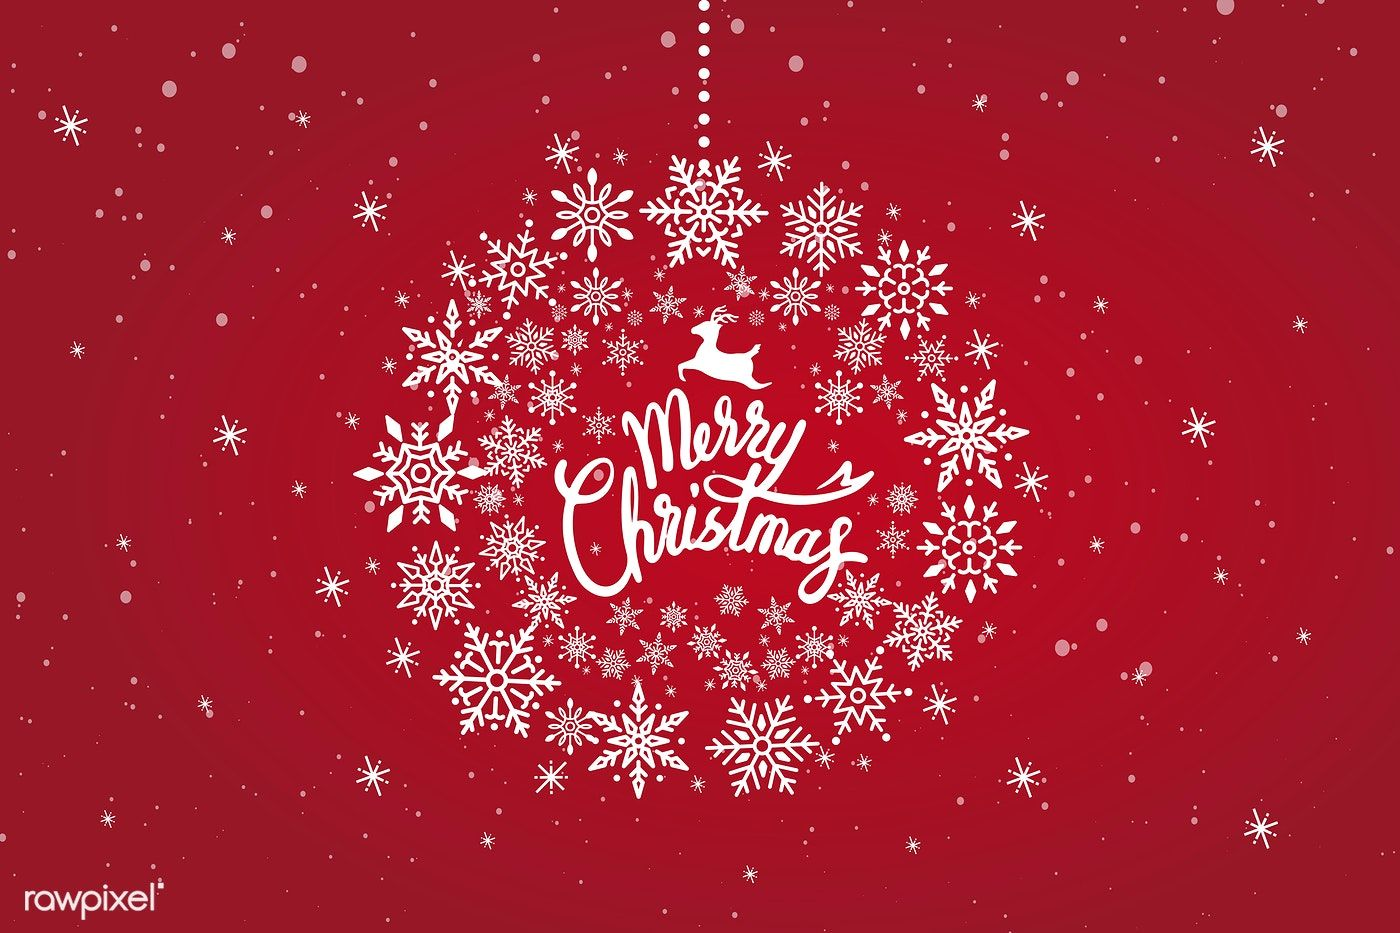 Merry Christmas typography design vector free image by